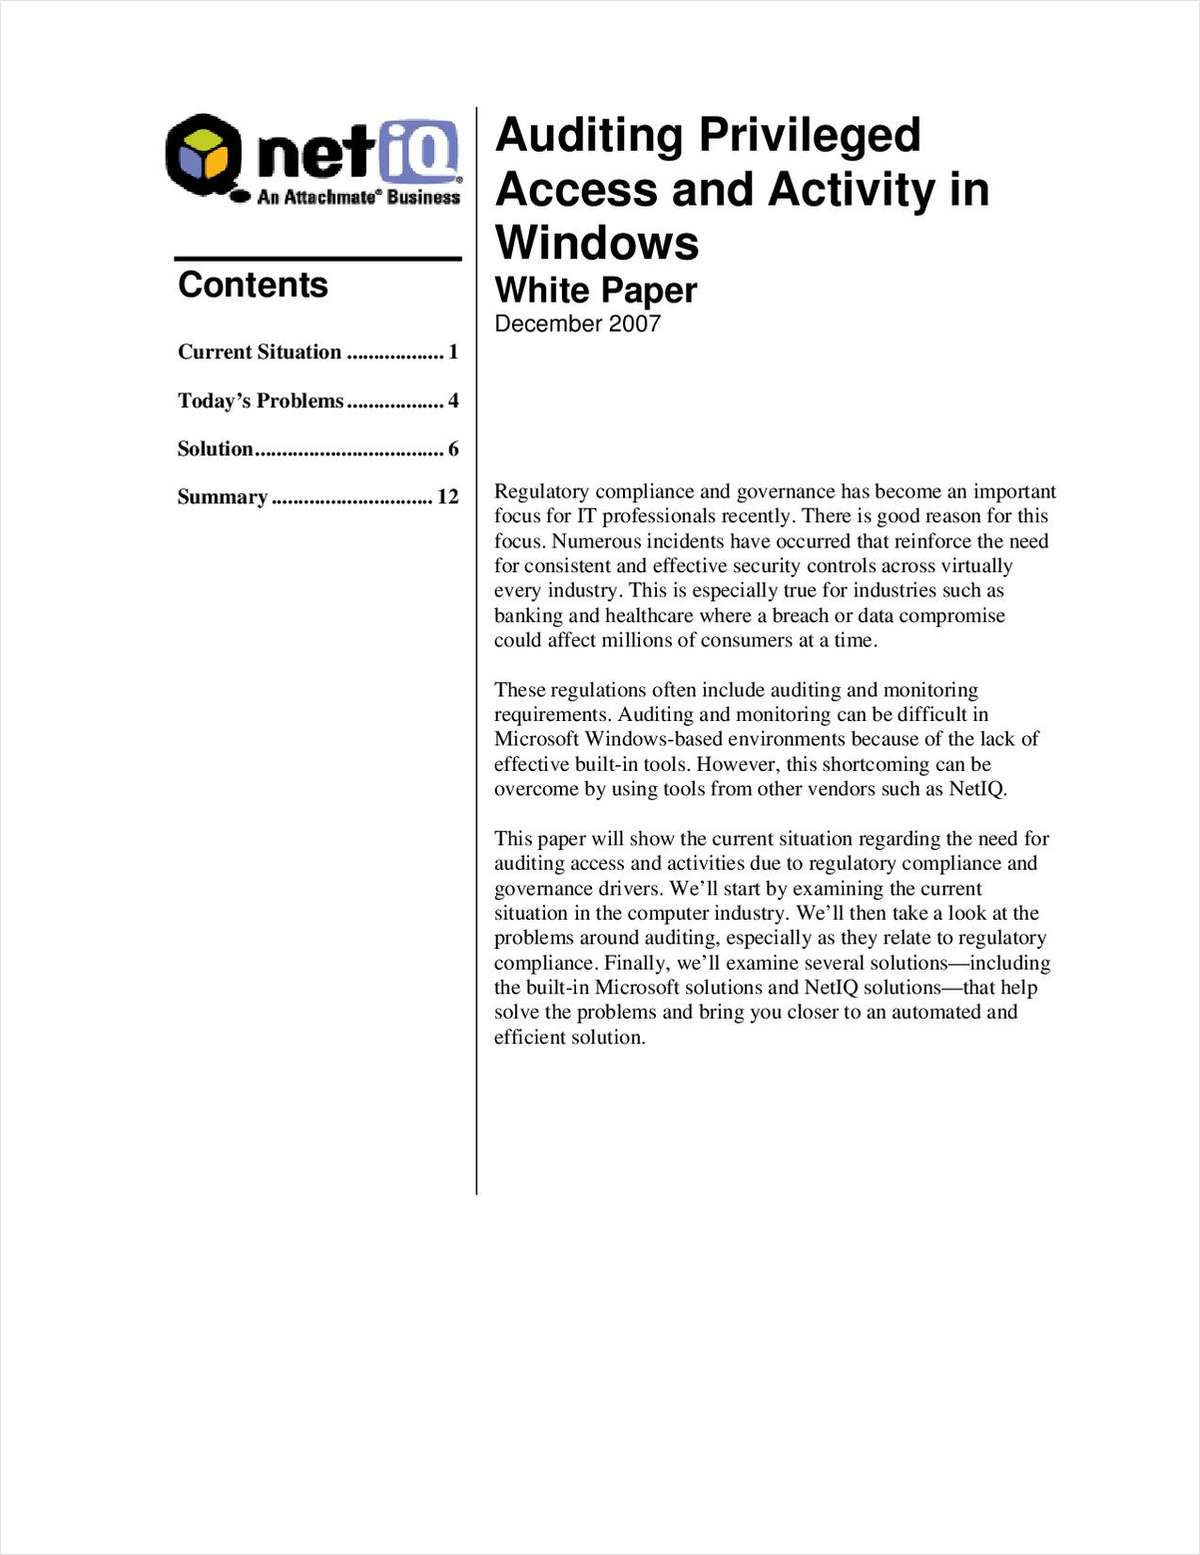 Auditing Privileged Access and Activity in Windows